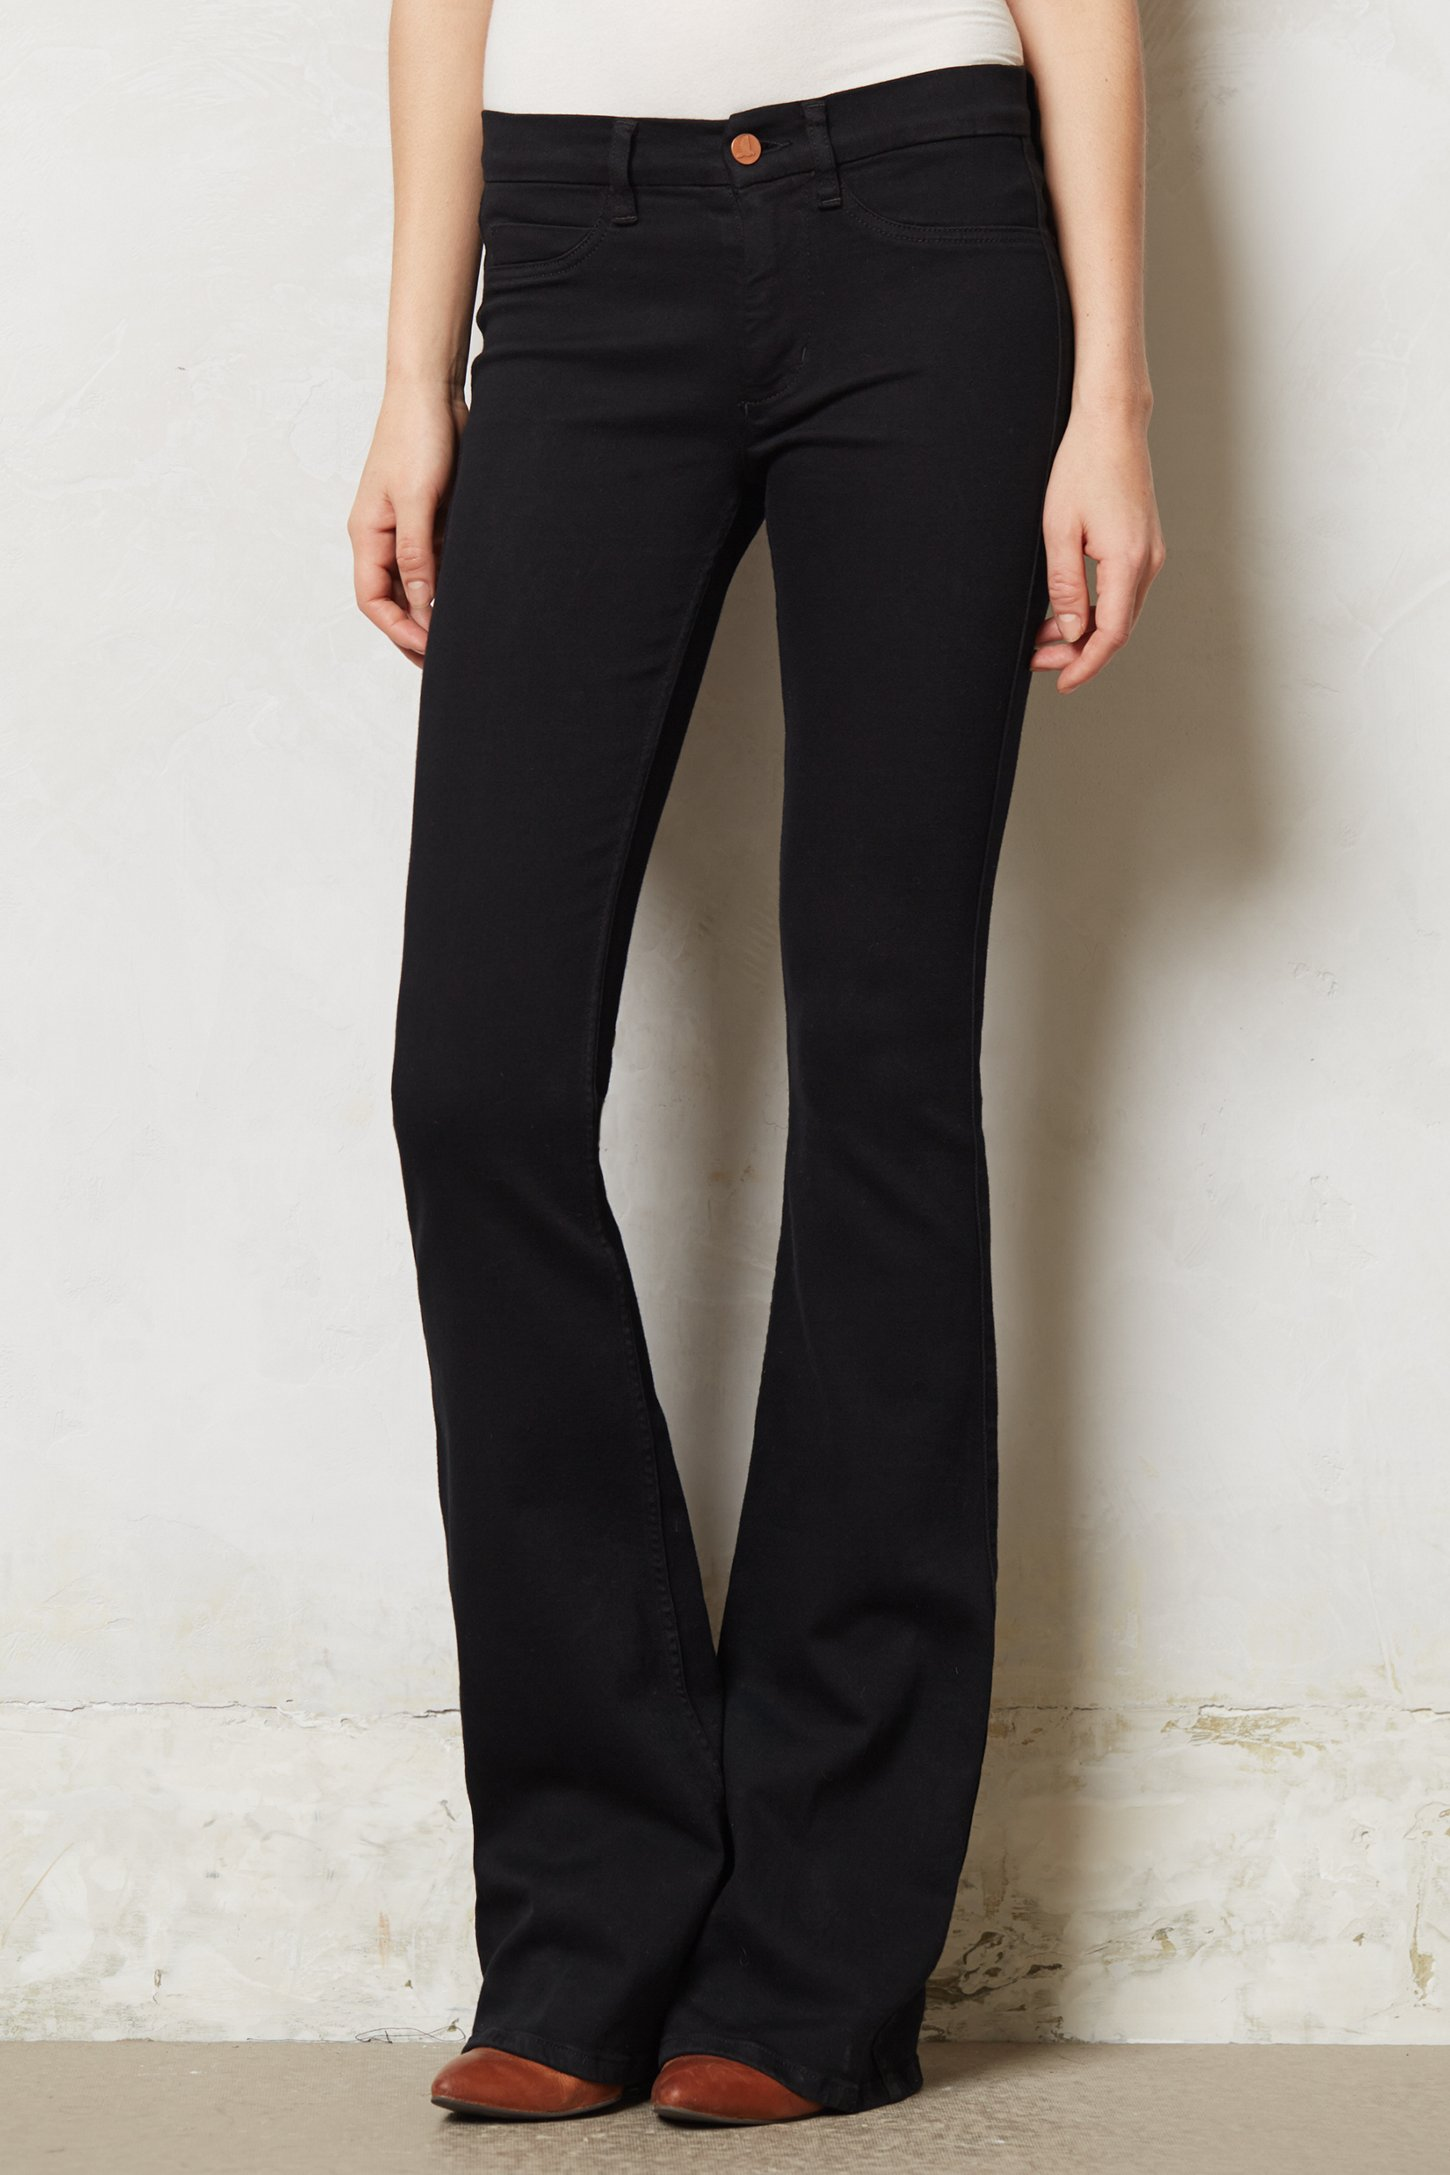 M.i.h jeans Marrakesh Skinny Kick Flare Jeans in Black | Lyst